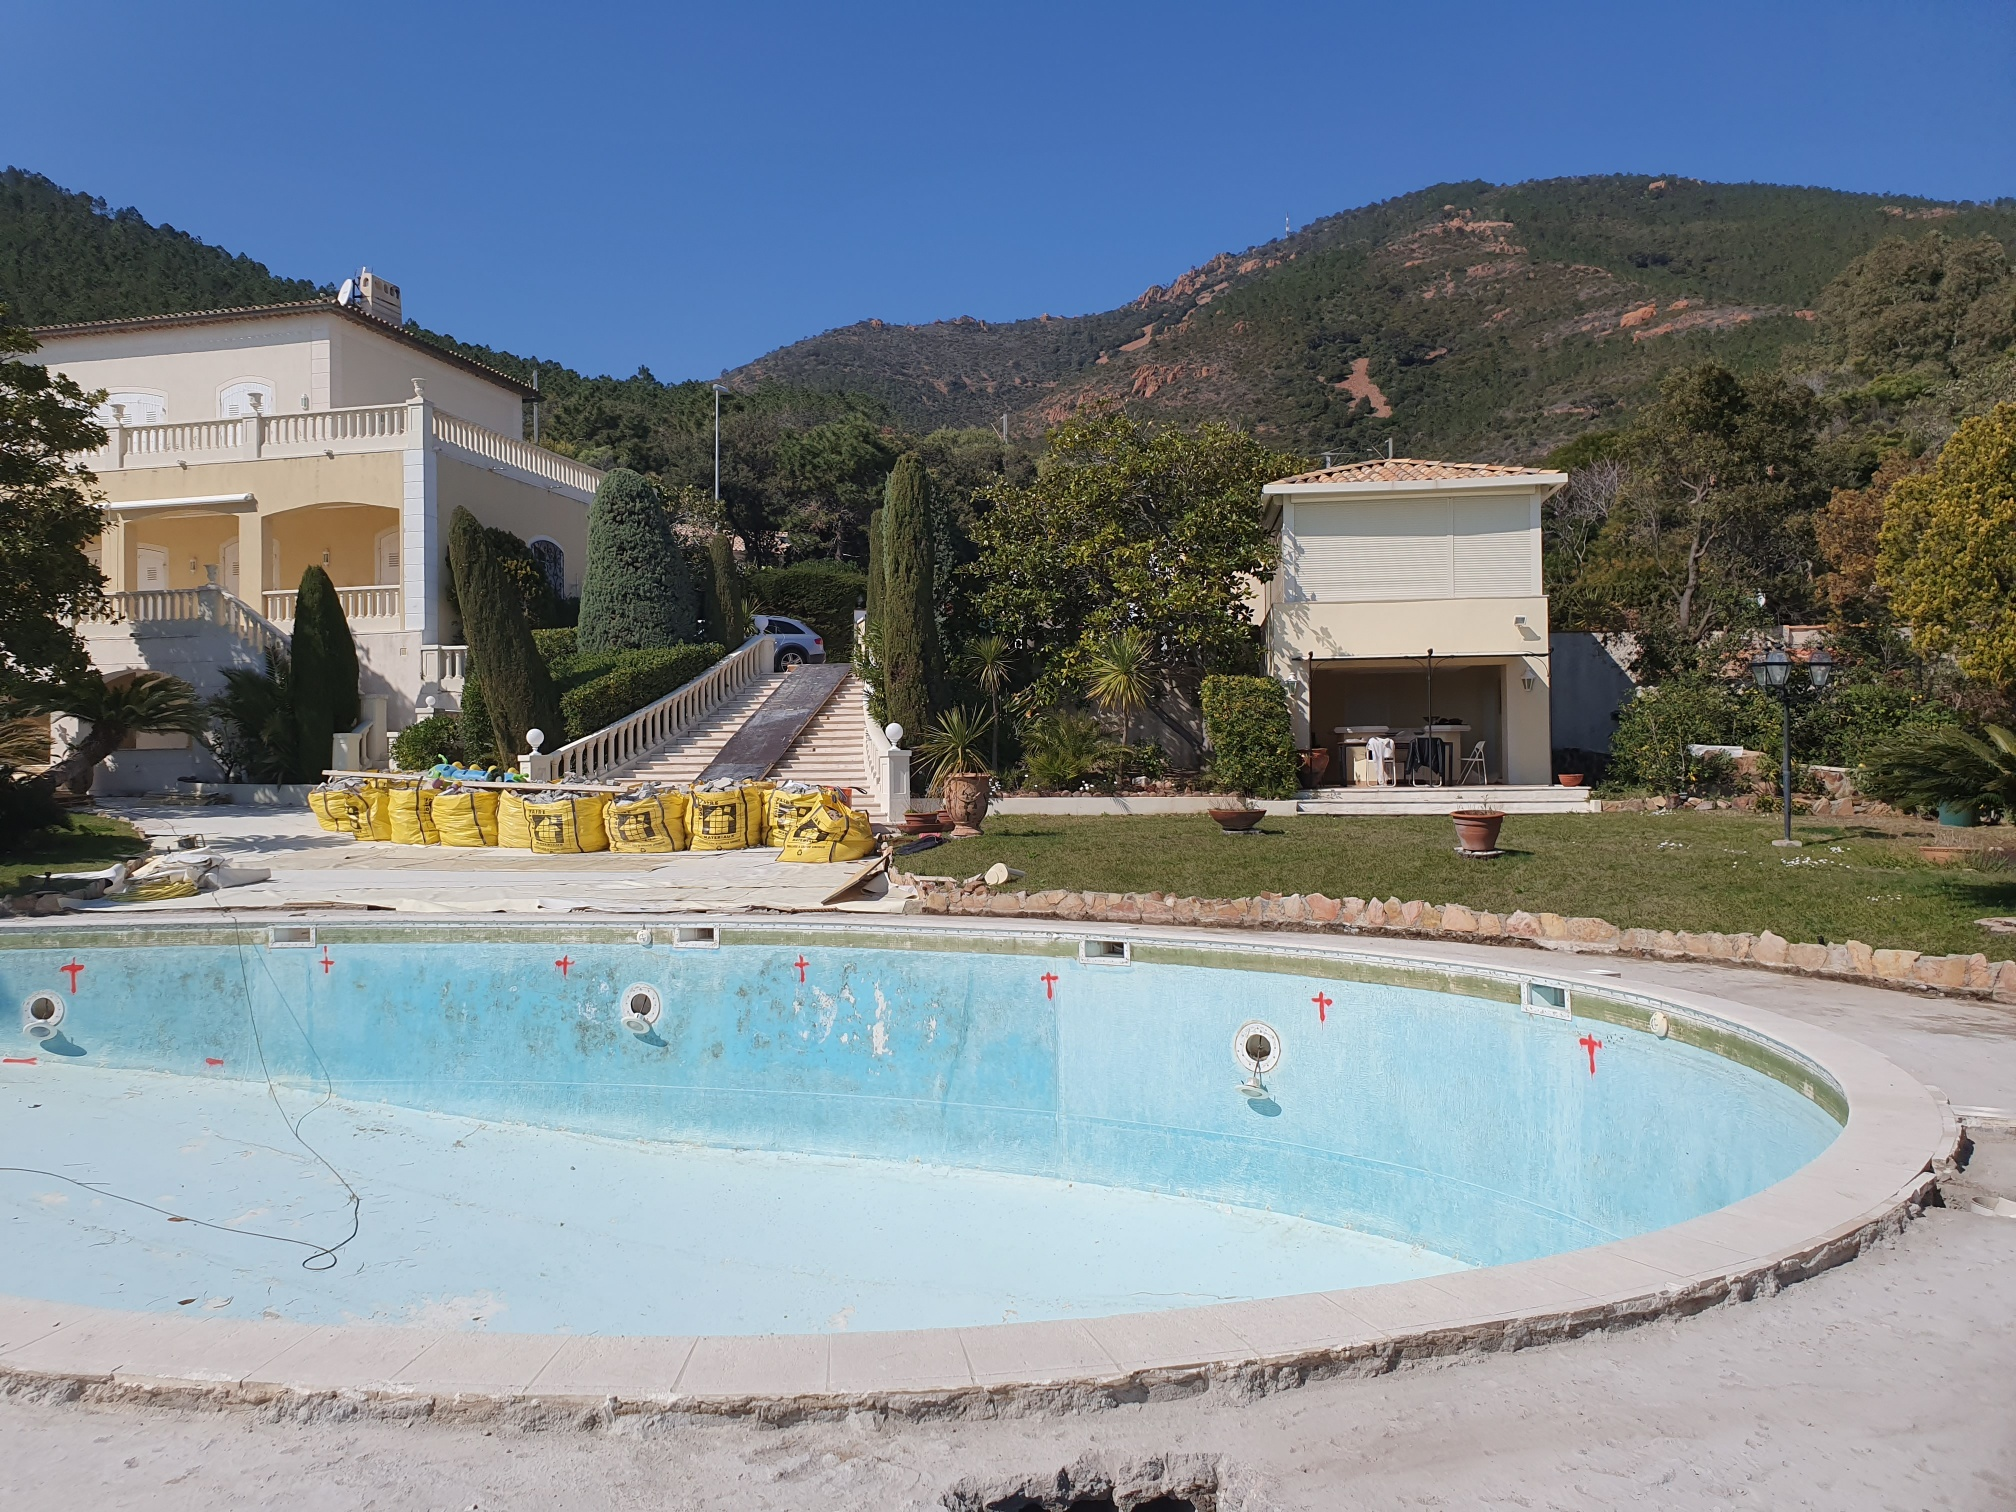 02-renovation-piscine-theoume-sur-mer